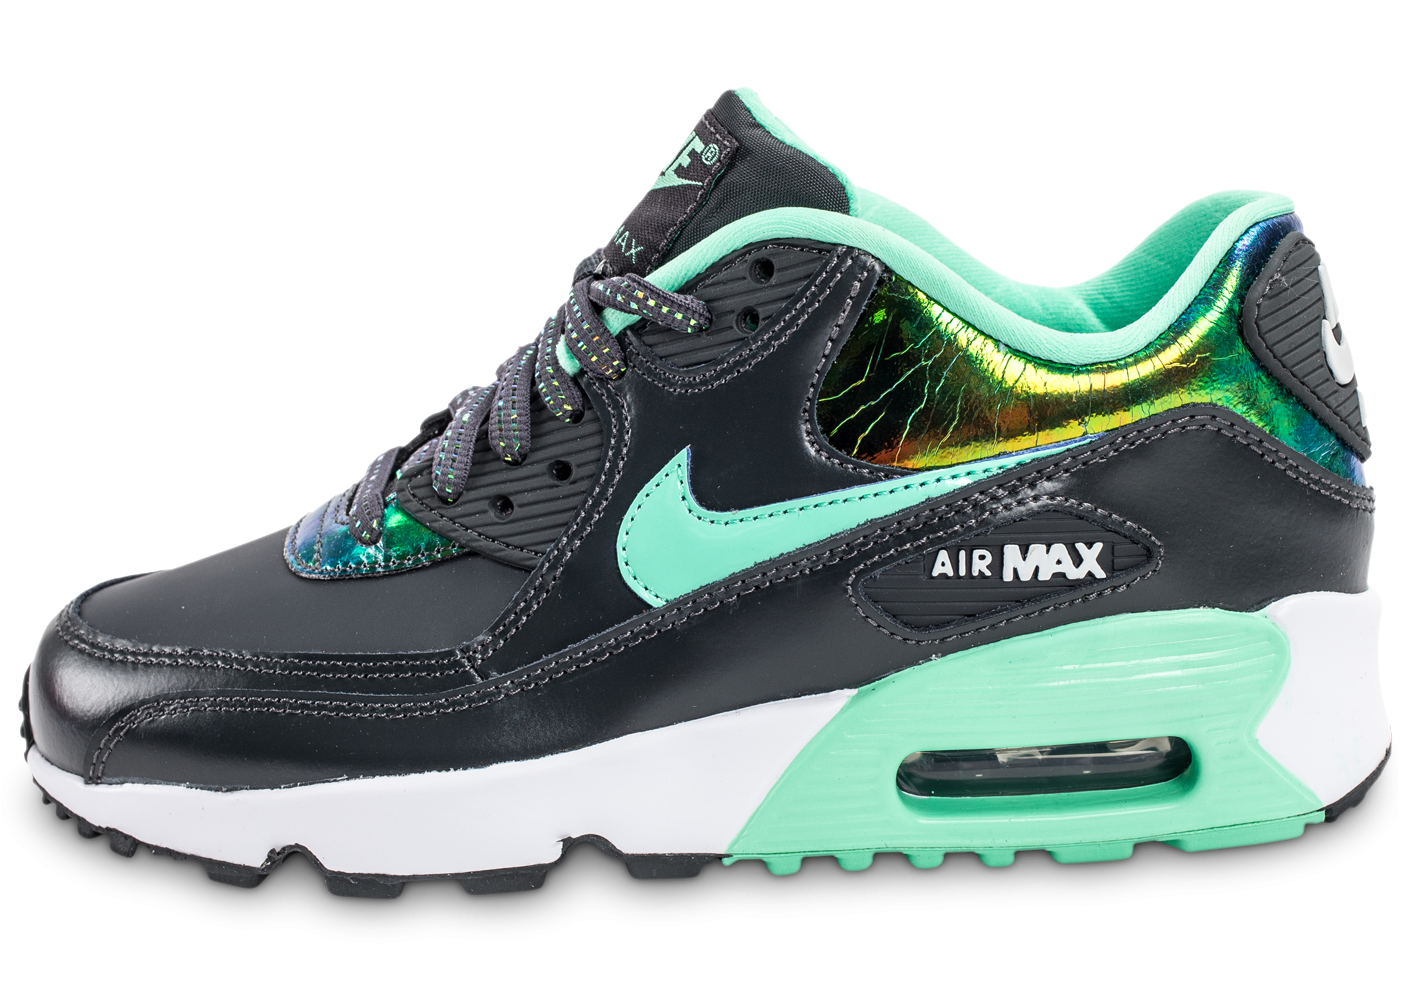 low priced 227c5 3f6d6 Nouveau Nike Air Max 90 Femme Pas Cher Tea989